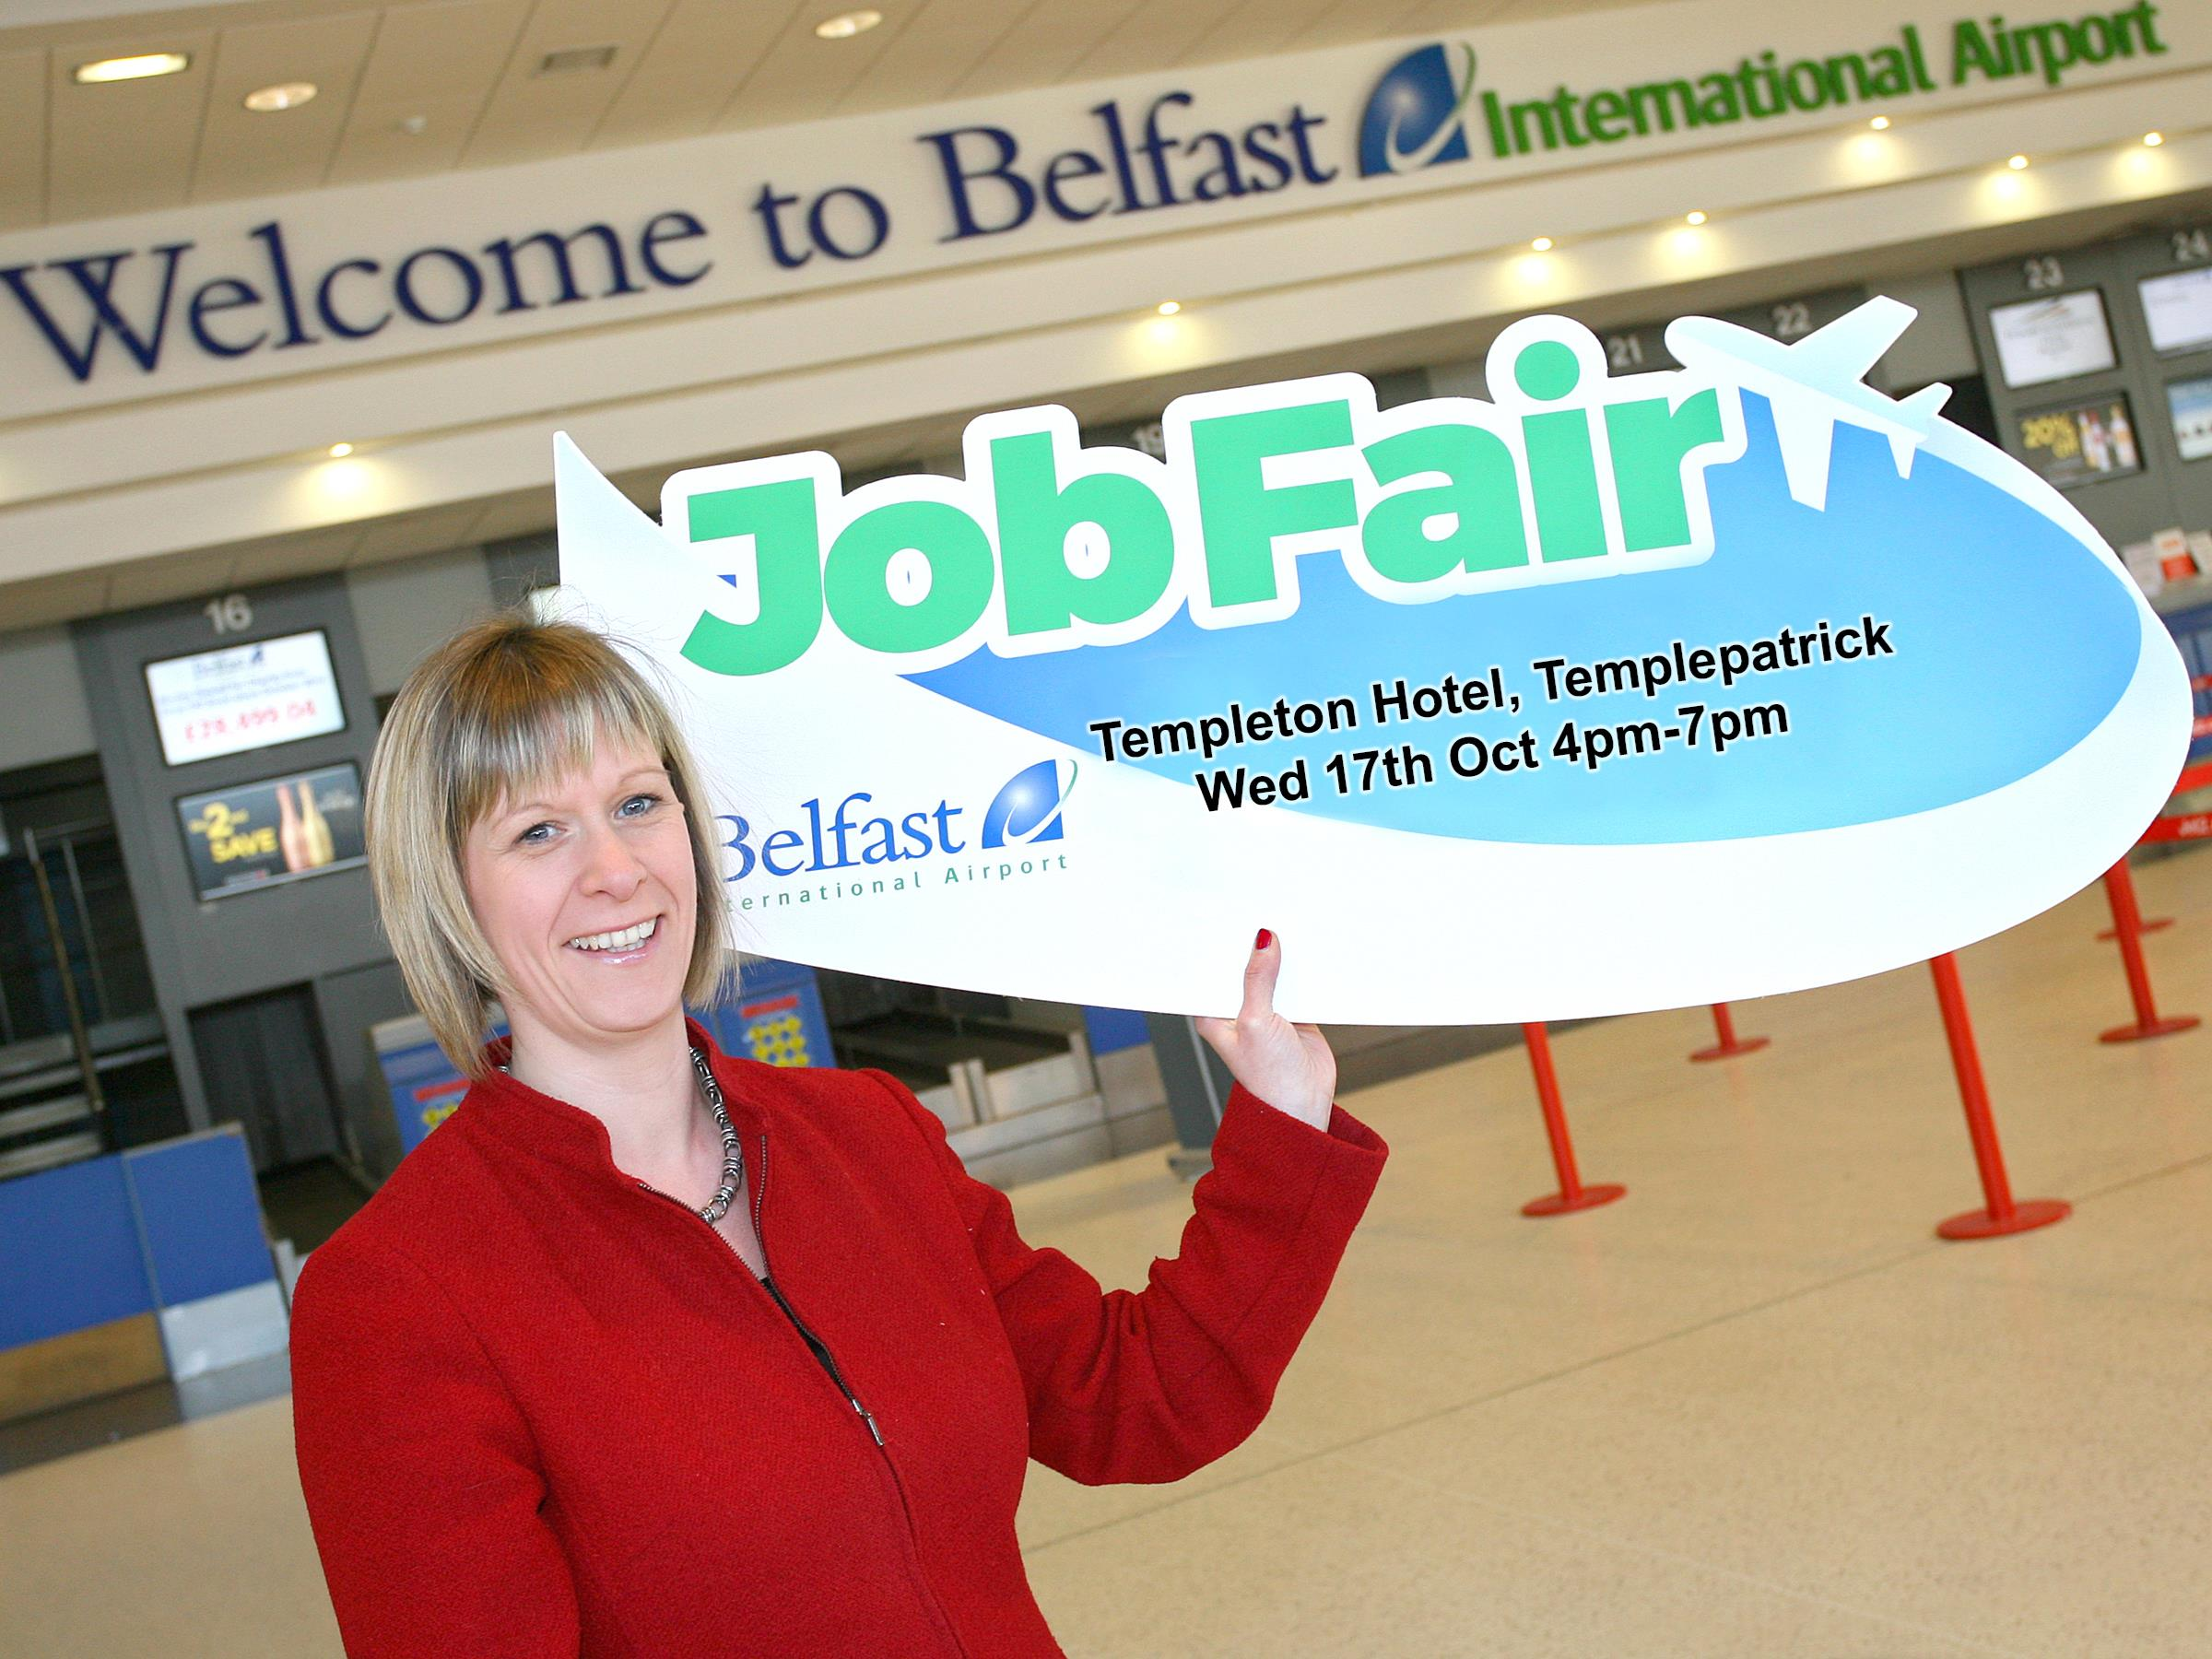 Airport Job Fair has over 120 jobs on offer